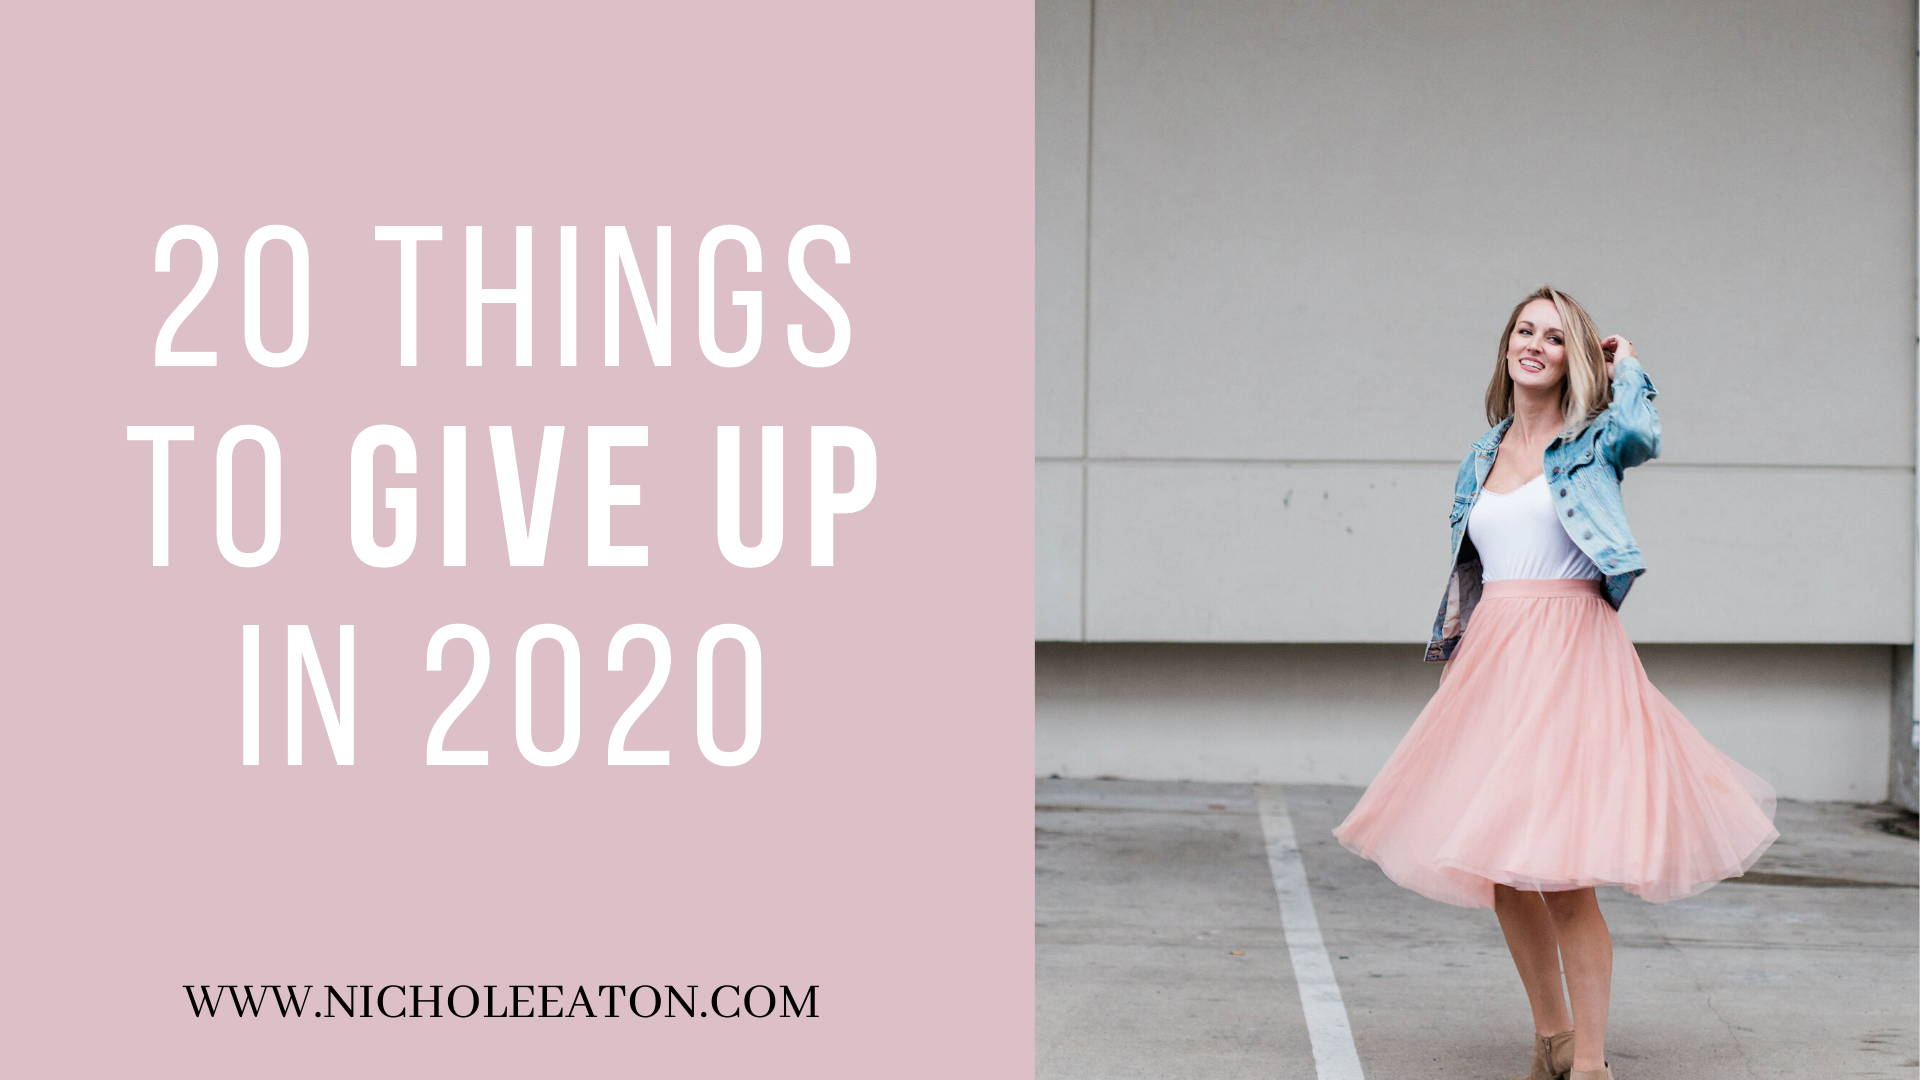 Nichole Eaton 20 Things to Give Up in 2020